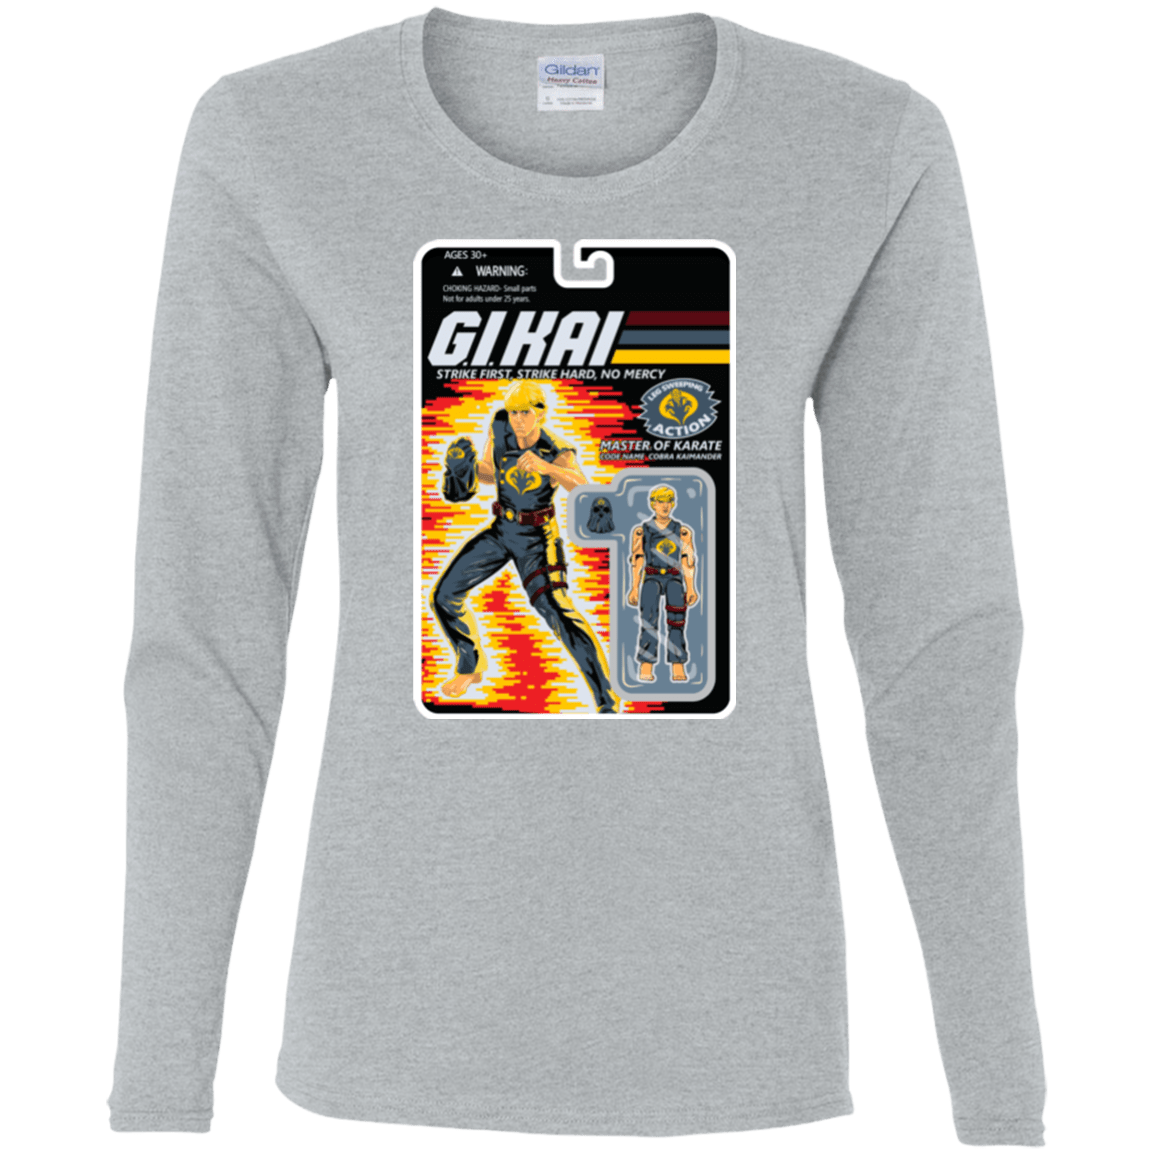 T-Shirts Sport Grey / S GI KAI Women's Long Sleeve T-Shirt